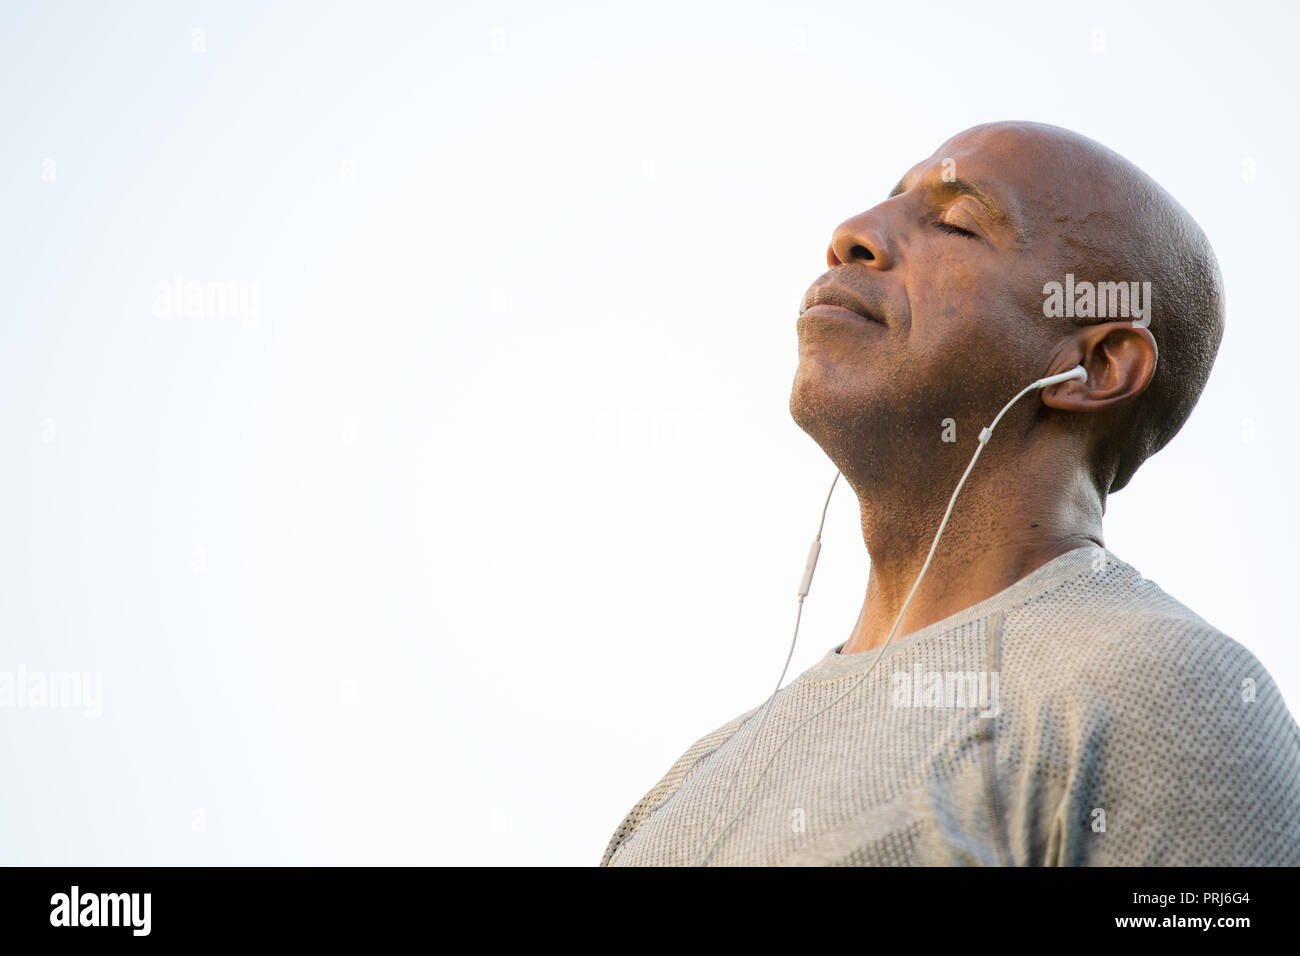 Fit African American man listening to music. - Stock Image